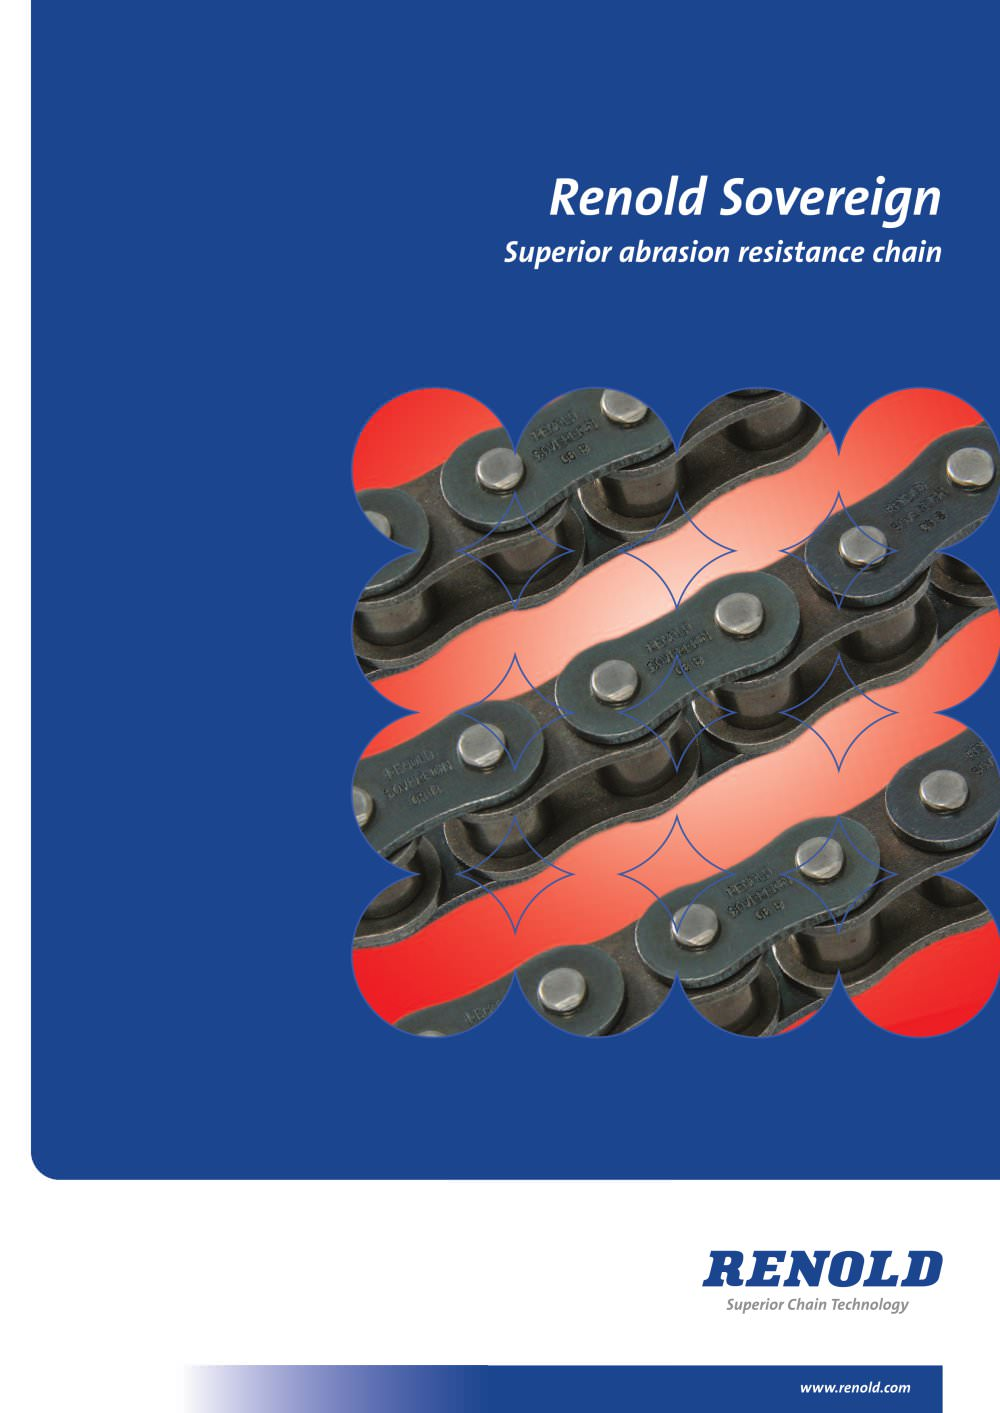 renold sovereign chains